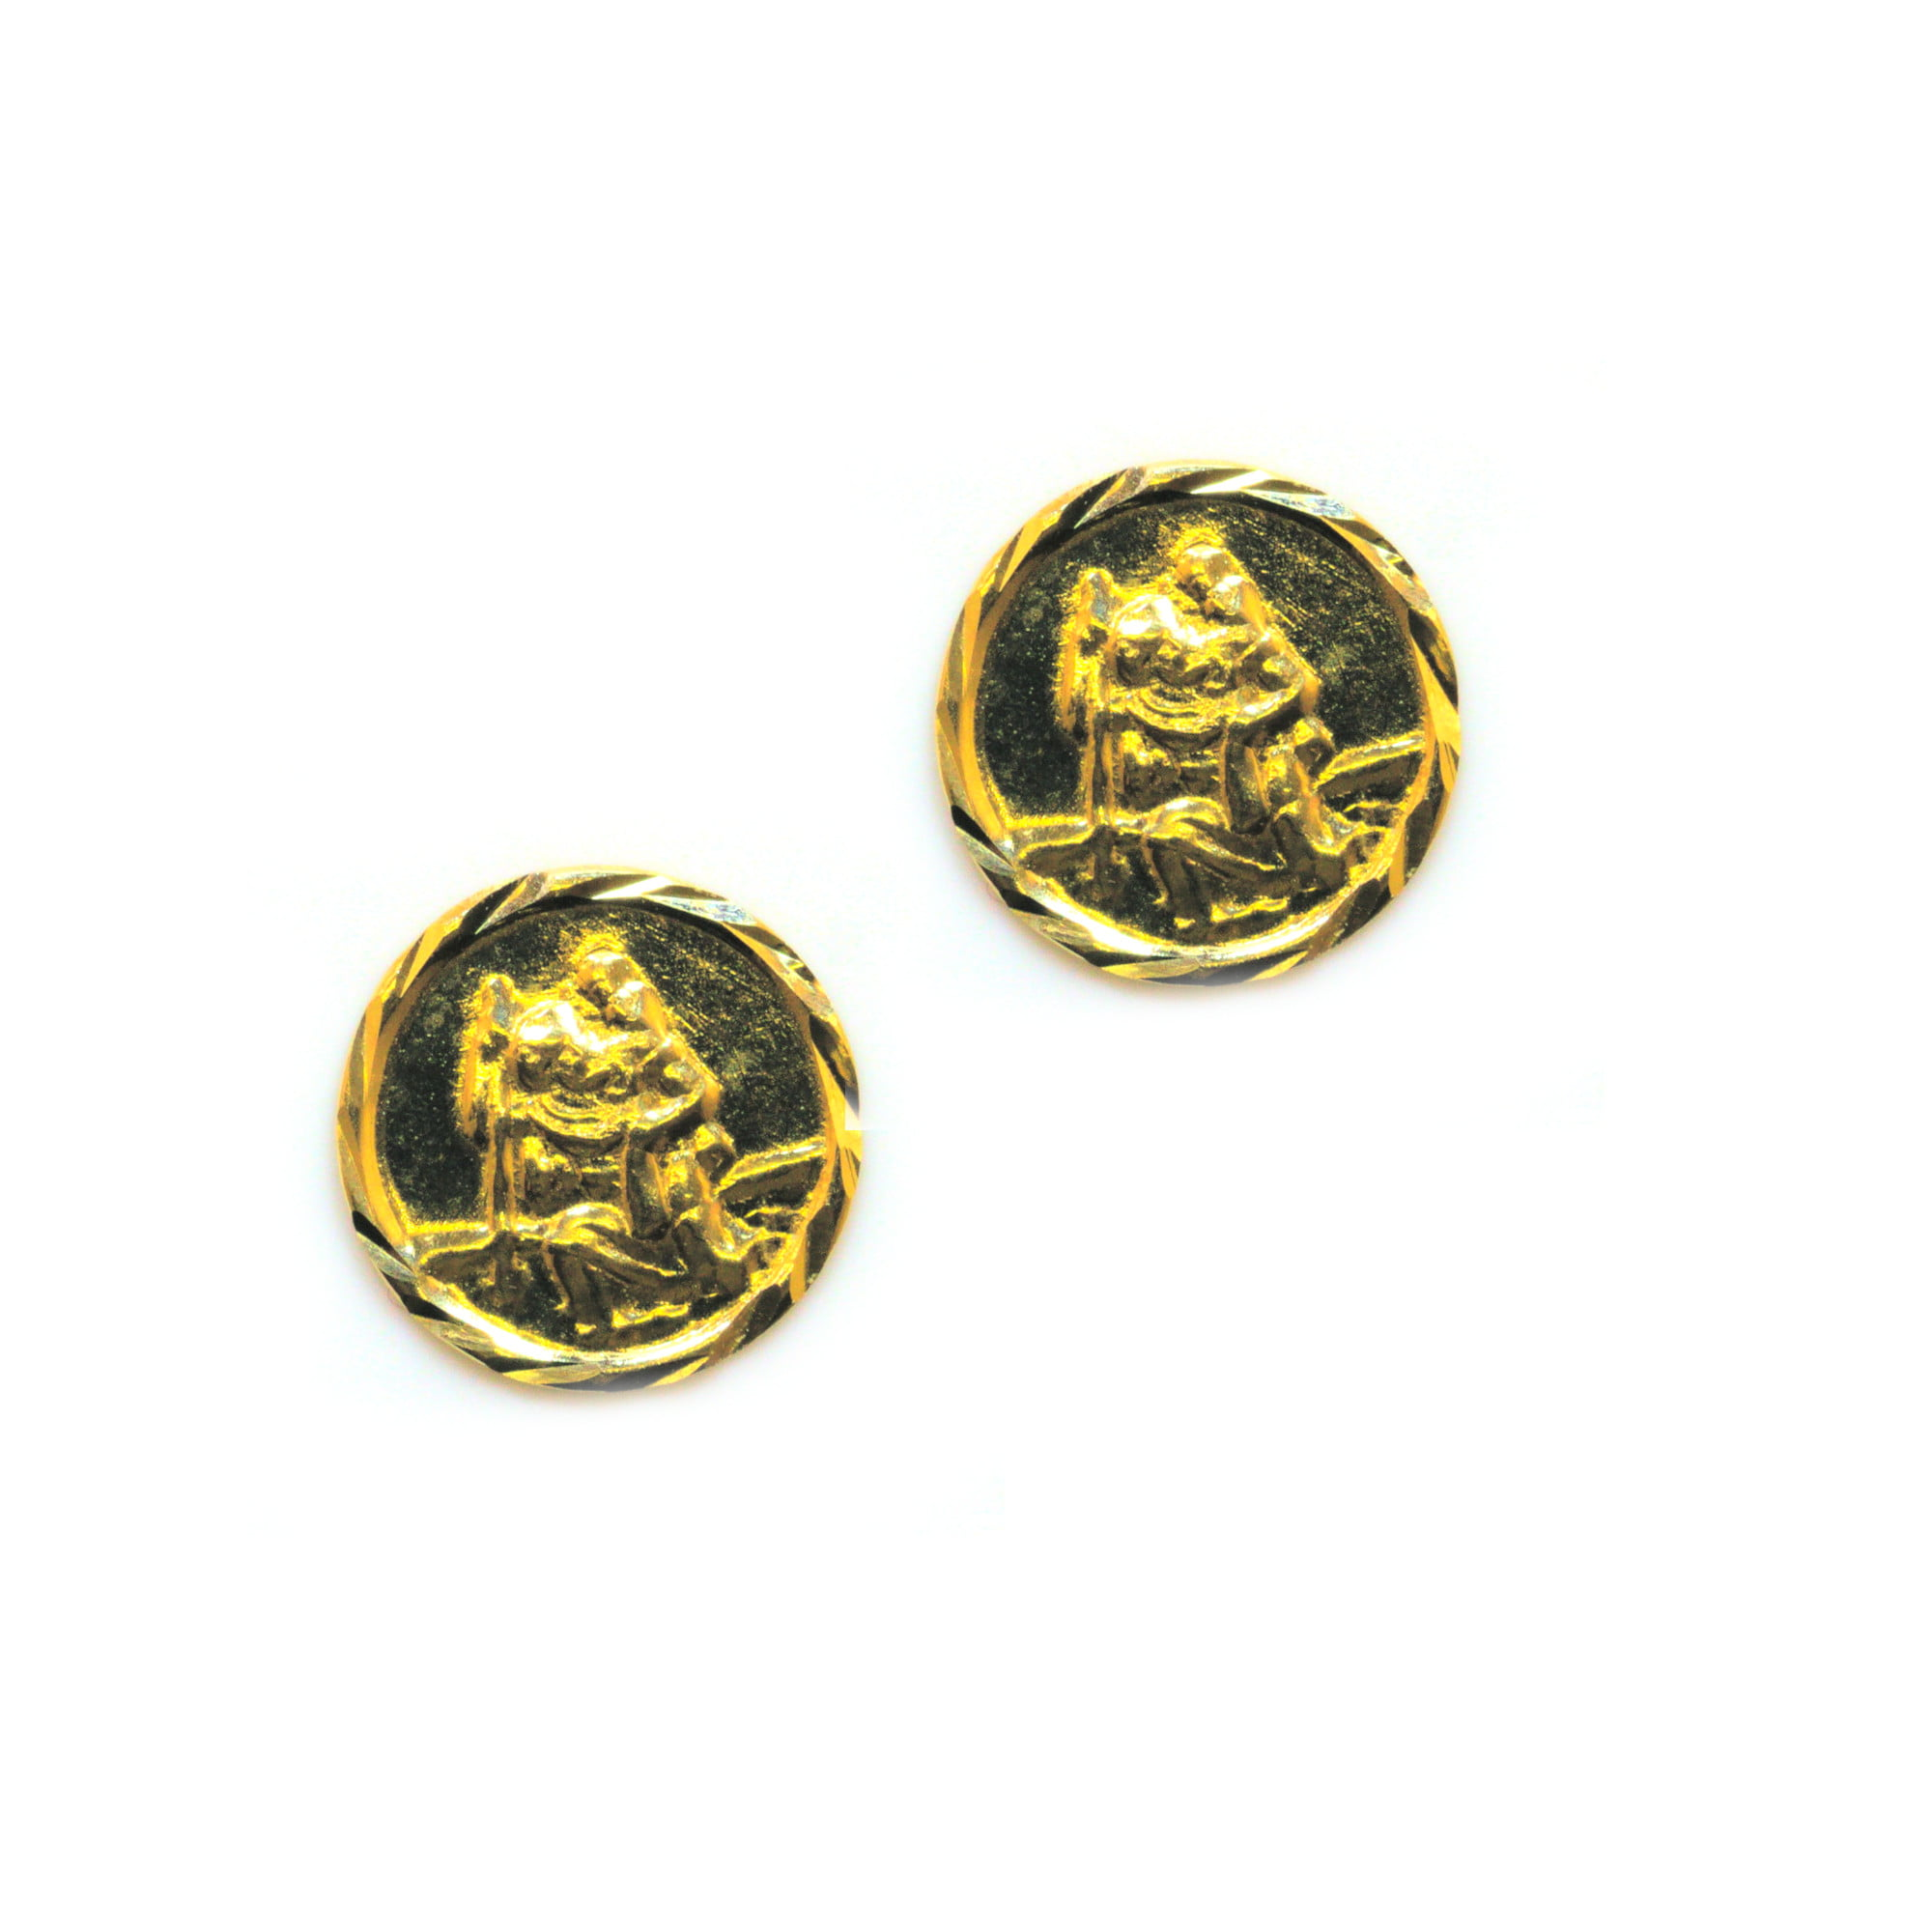 St Christopher earrings in 9ct yellow gold